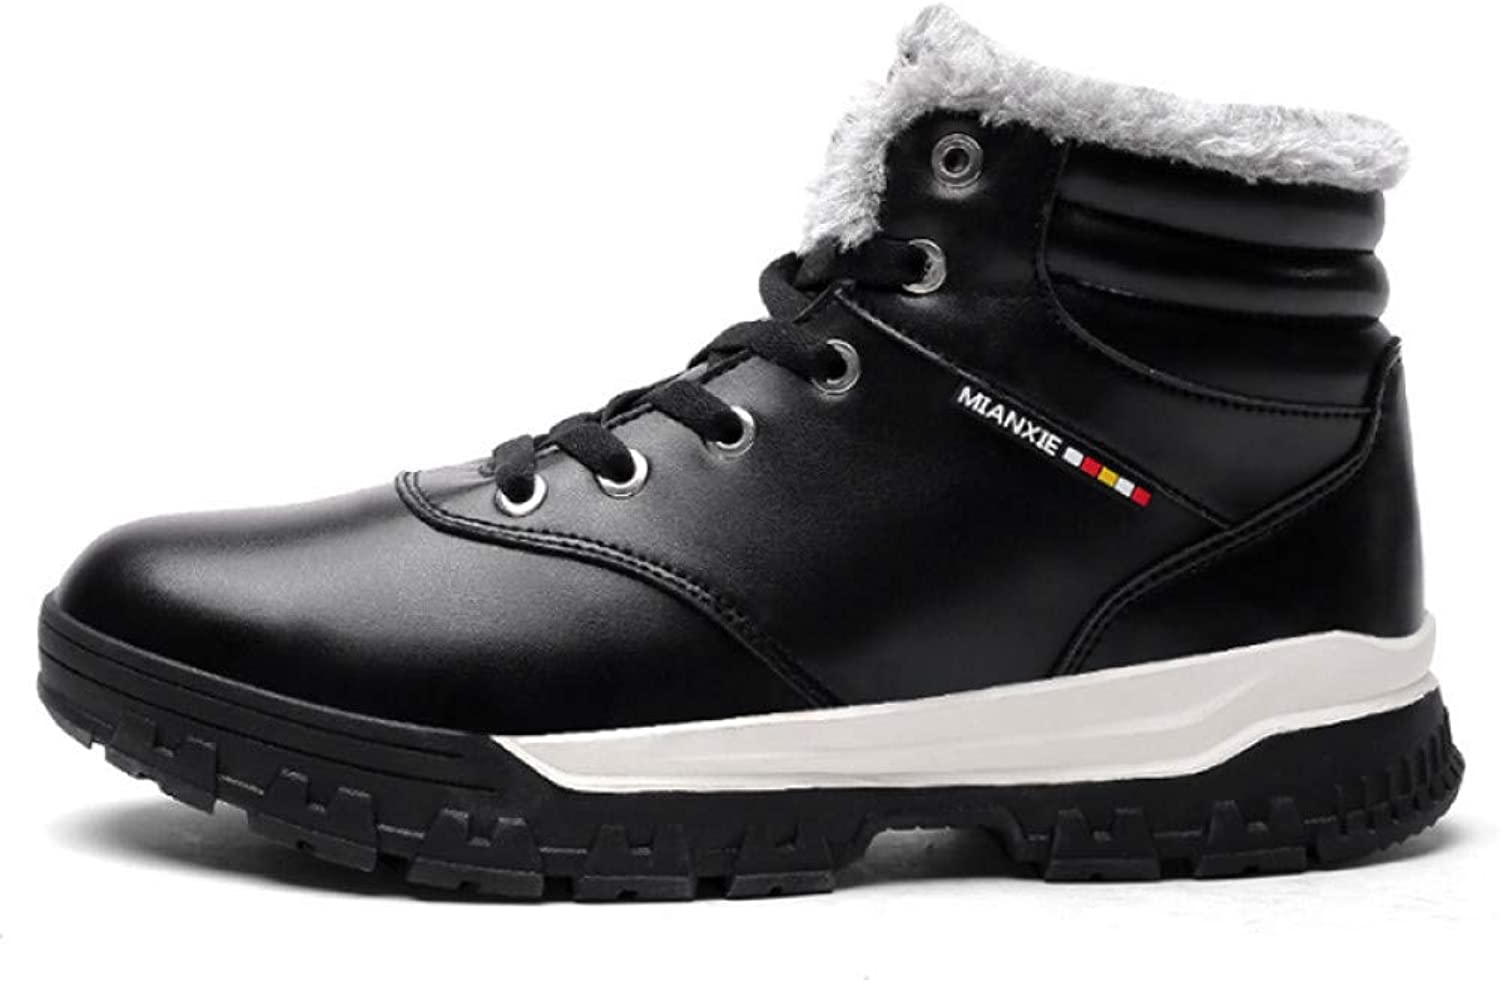 FHCGMX Winter Boots for Men Fashion Waterproof PU Casual Ankle Boots Keep Warm Cotton shoes Men Snow Boots